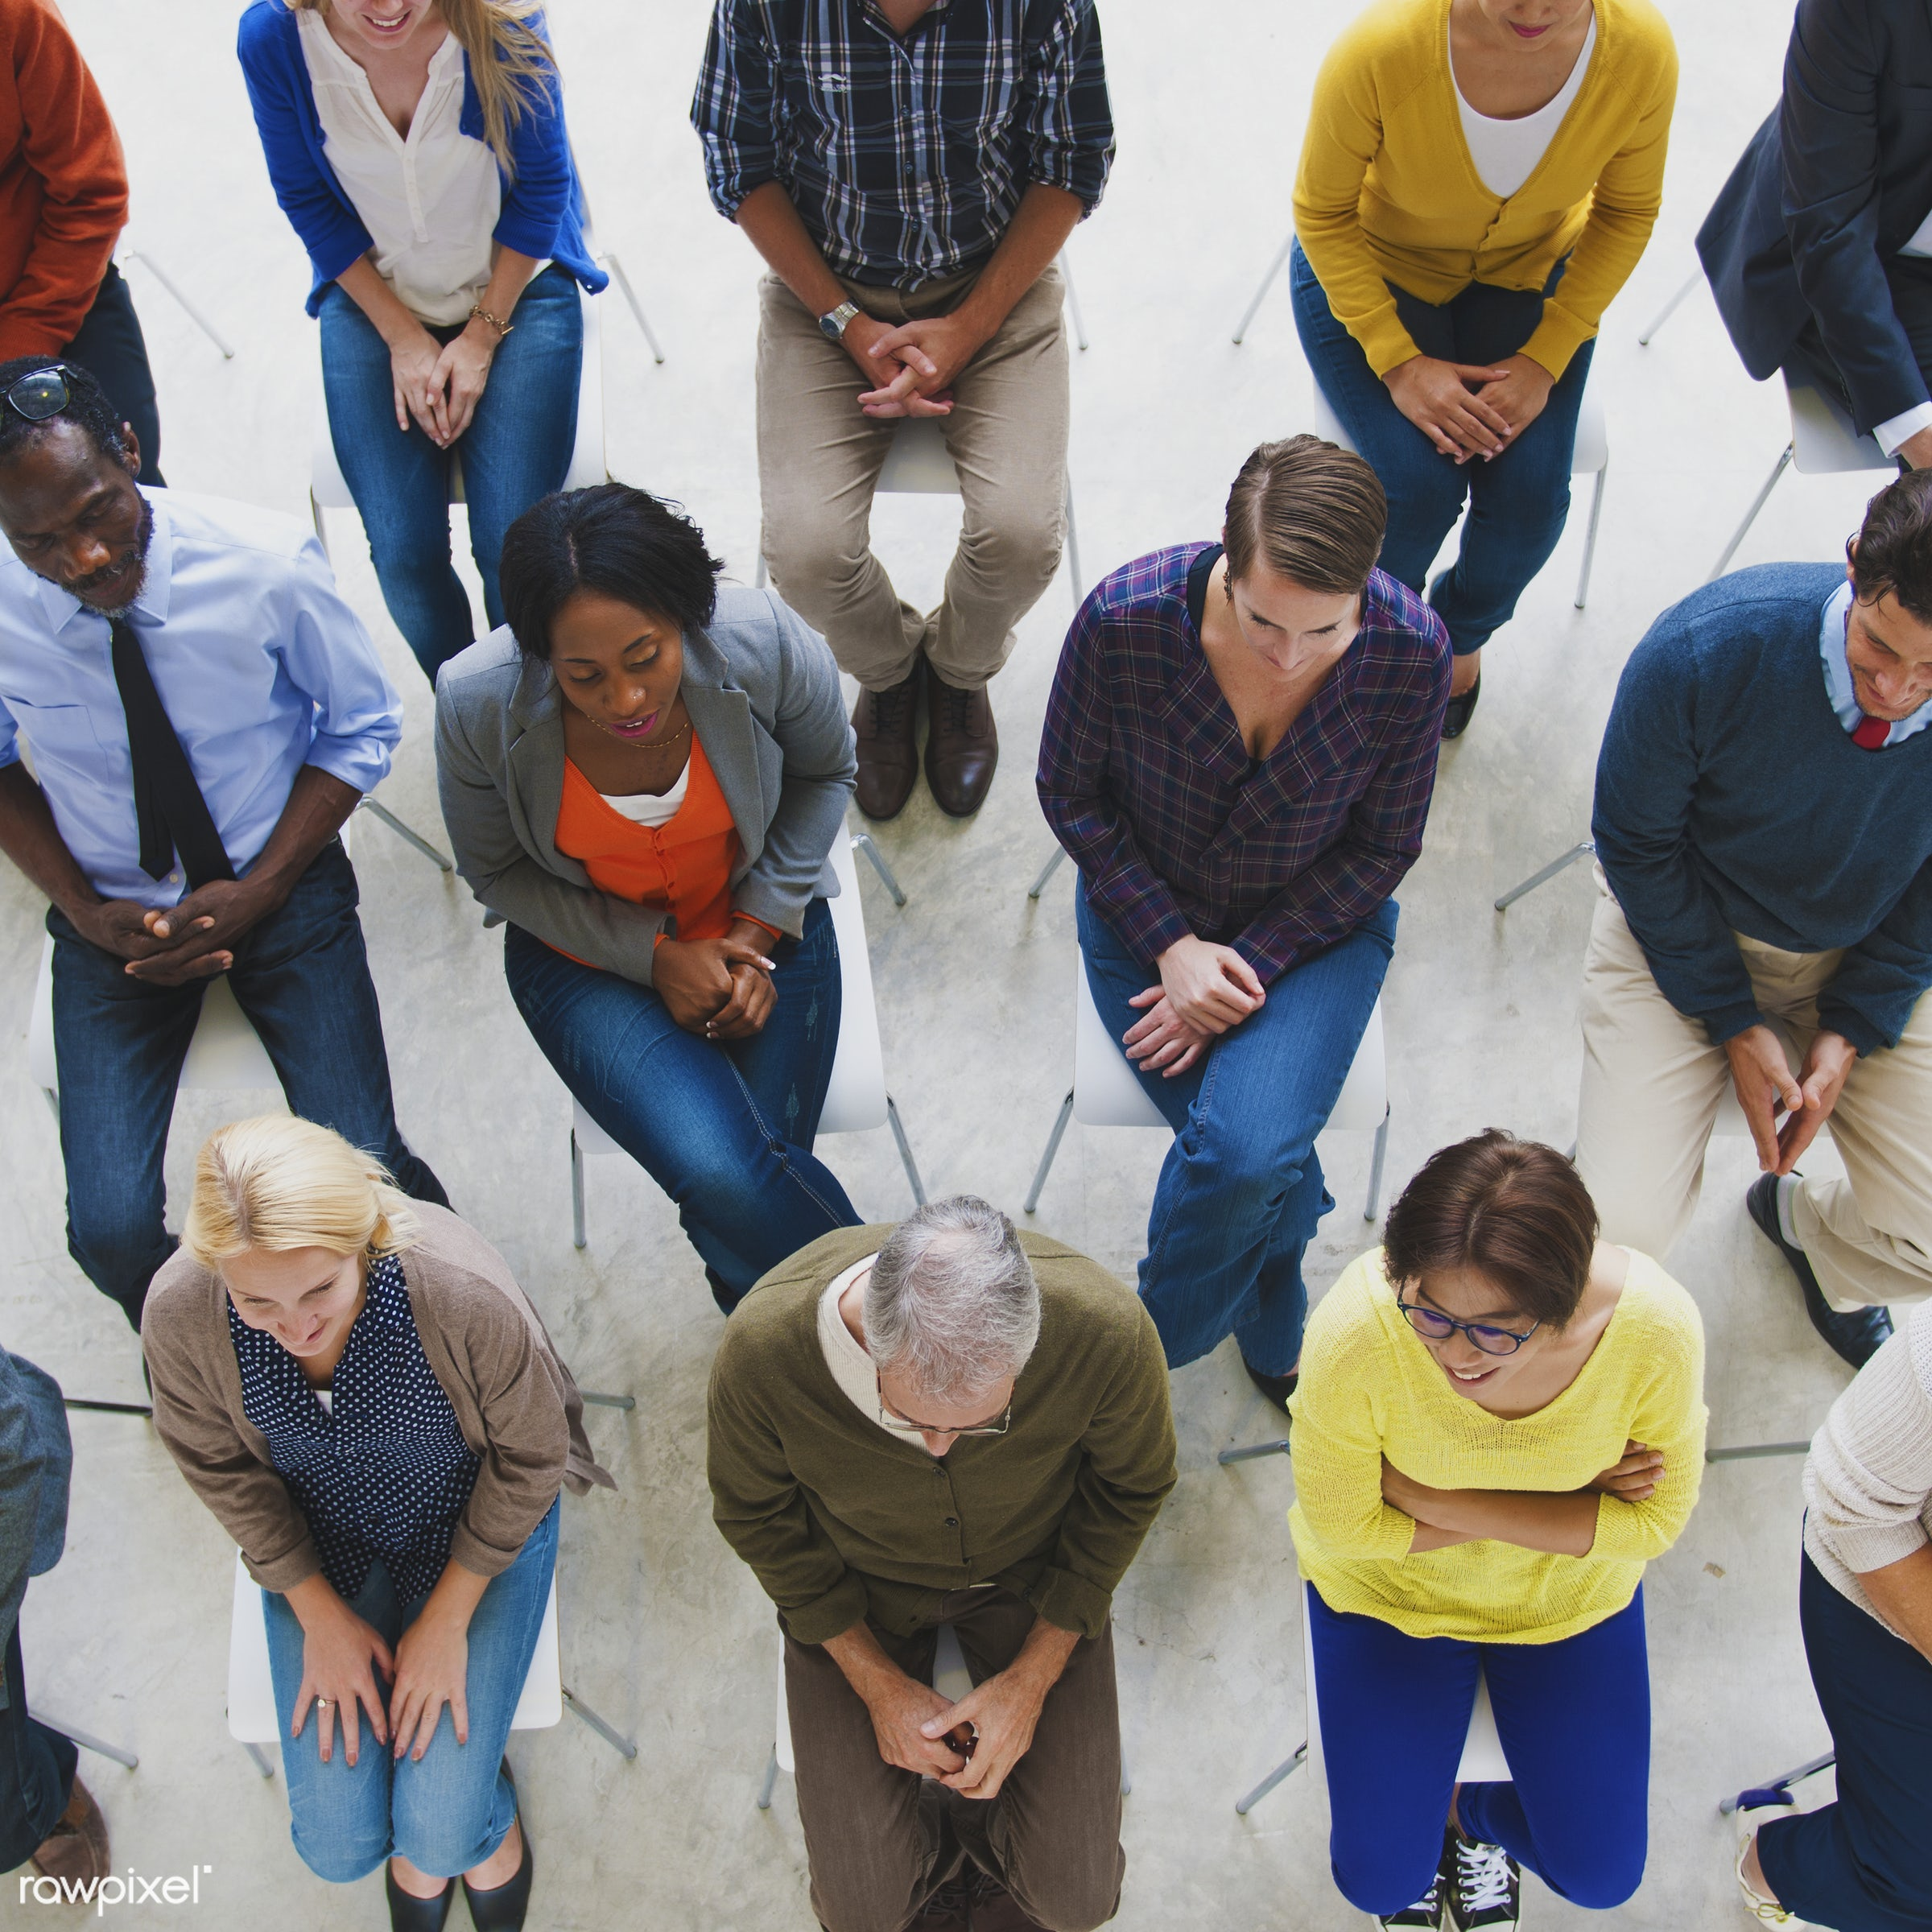 Group of diverse people in a seminar - cheerful, communication, community, diverse, friends, friendship, group, meeting, men...